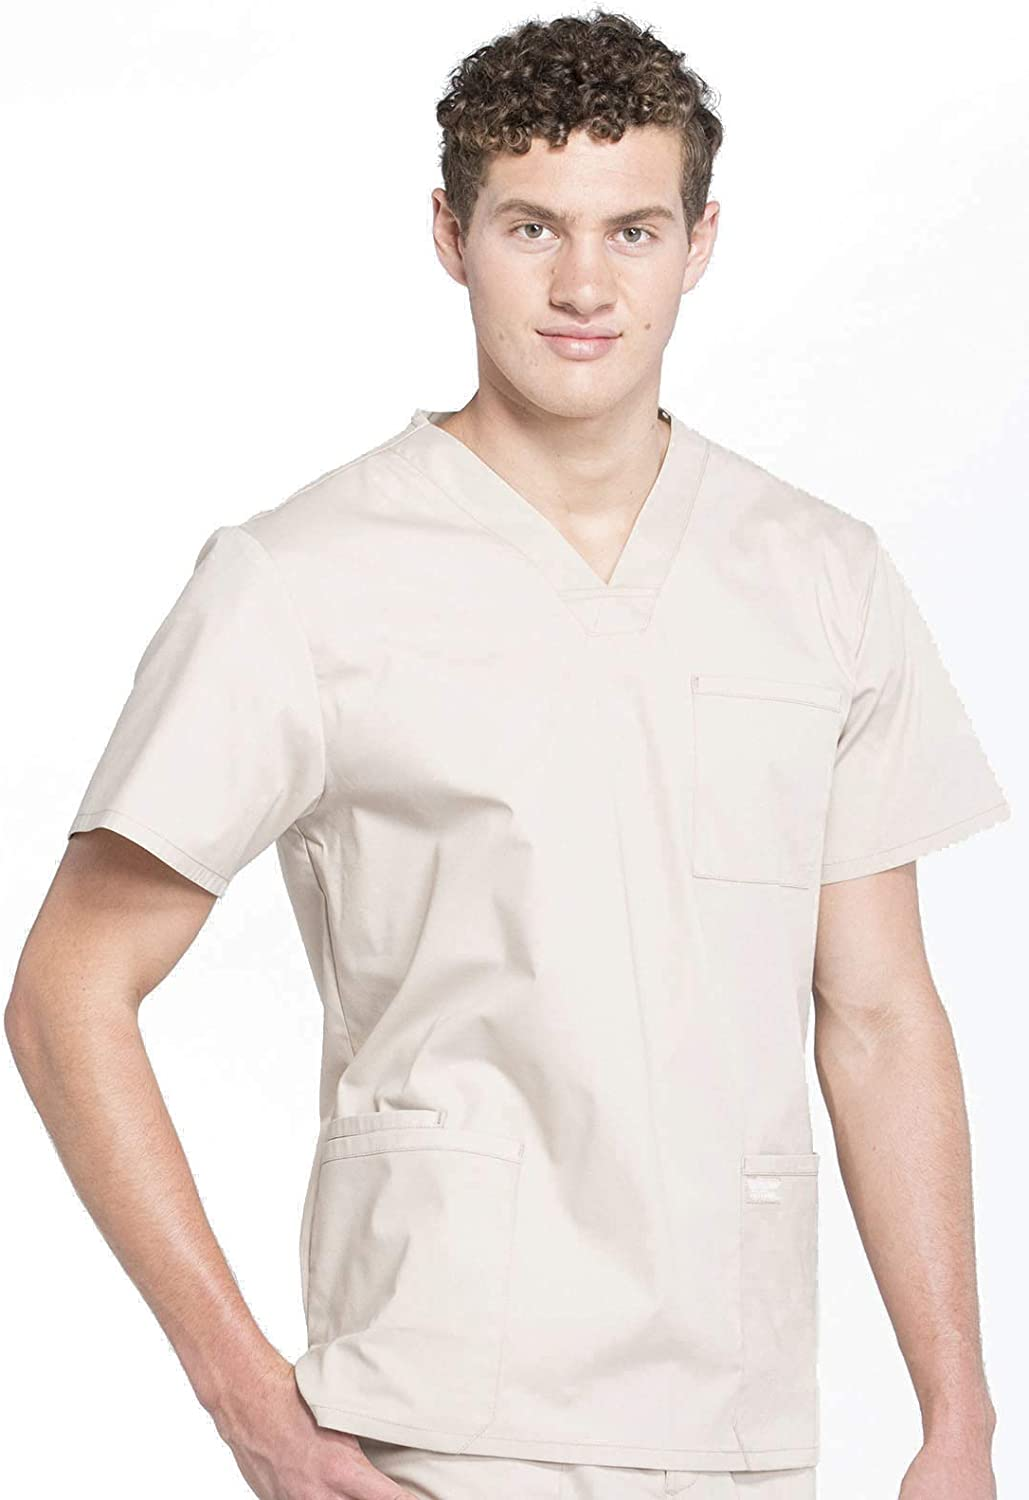 WW695 Khaki CHEROKEE WW Professionals Mens V-Neck Scrub Top 2XL